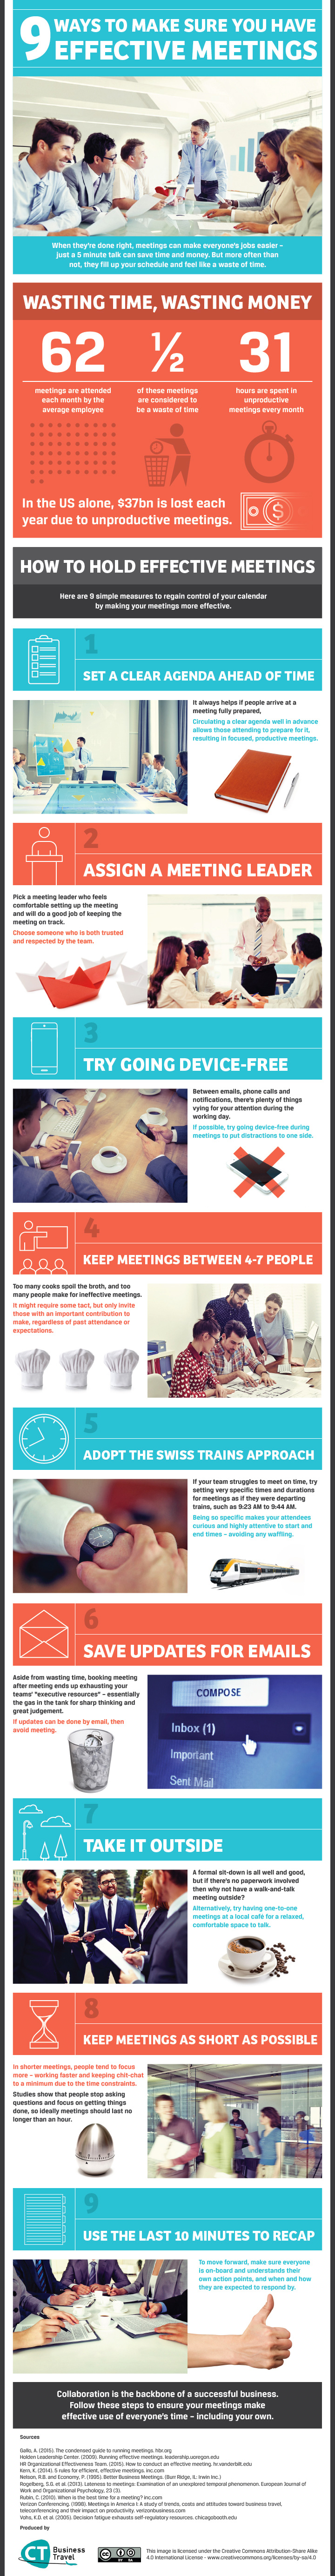 20151210043850-efective-meetings-infographic